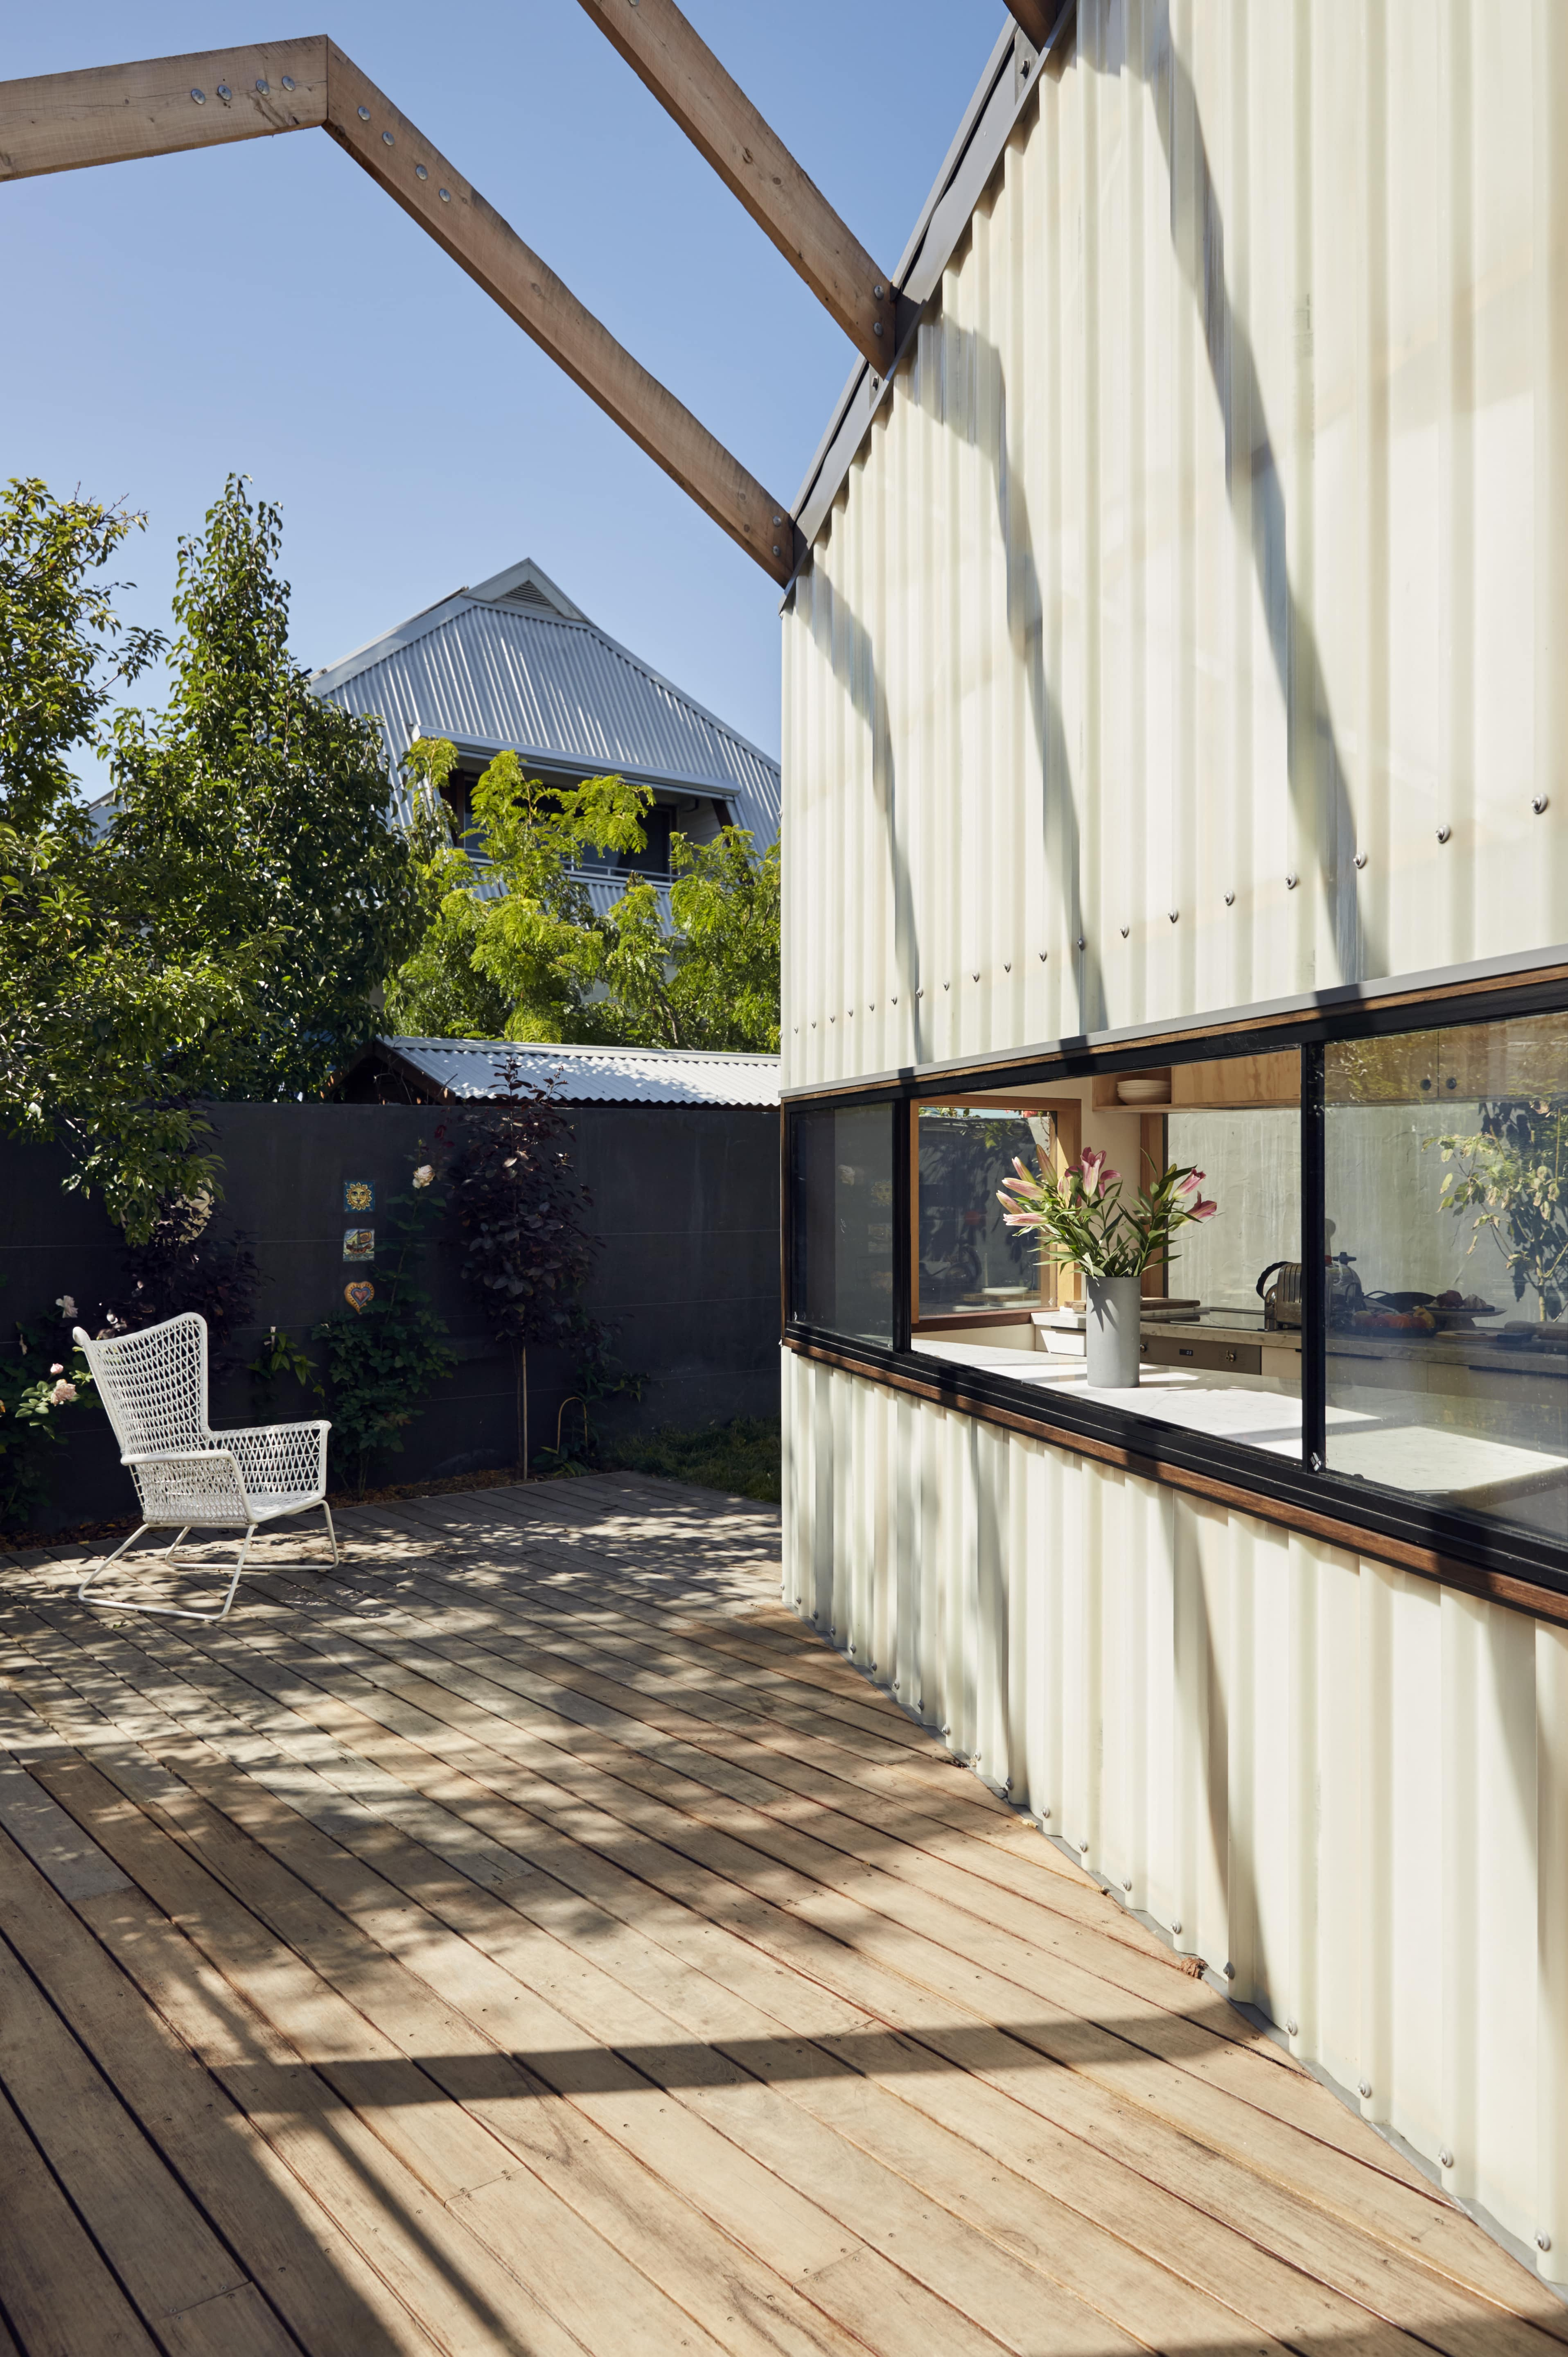 Gallery Of St Kilda East House By Claire Scorpo Local Australian Contemporary Architecture & Interiors Melbourne Image 8